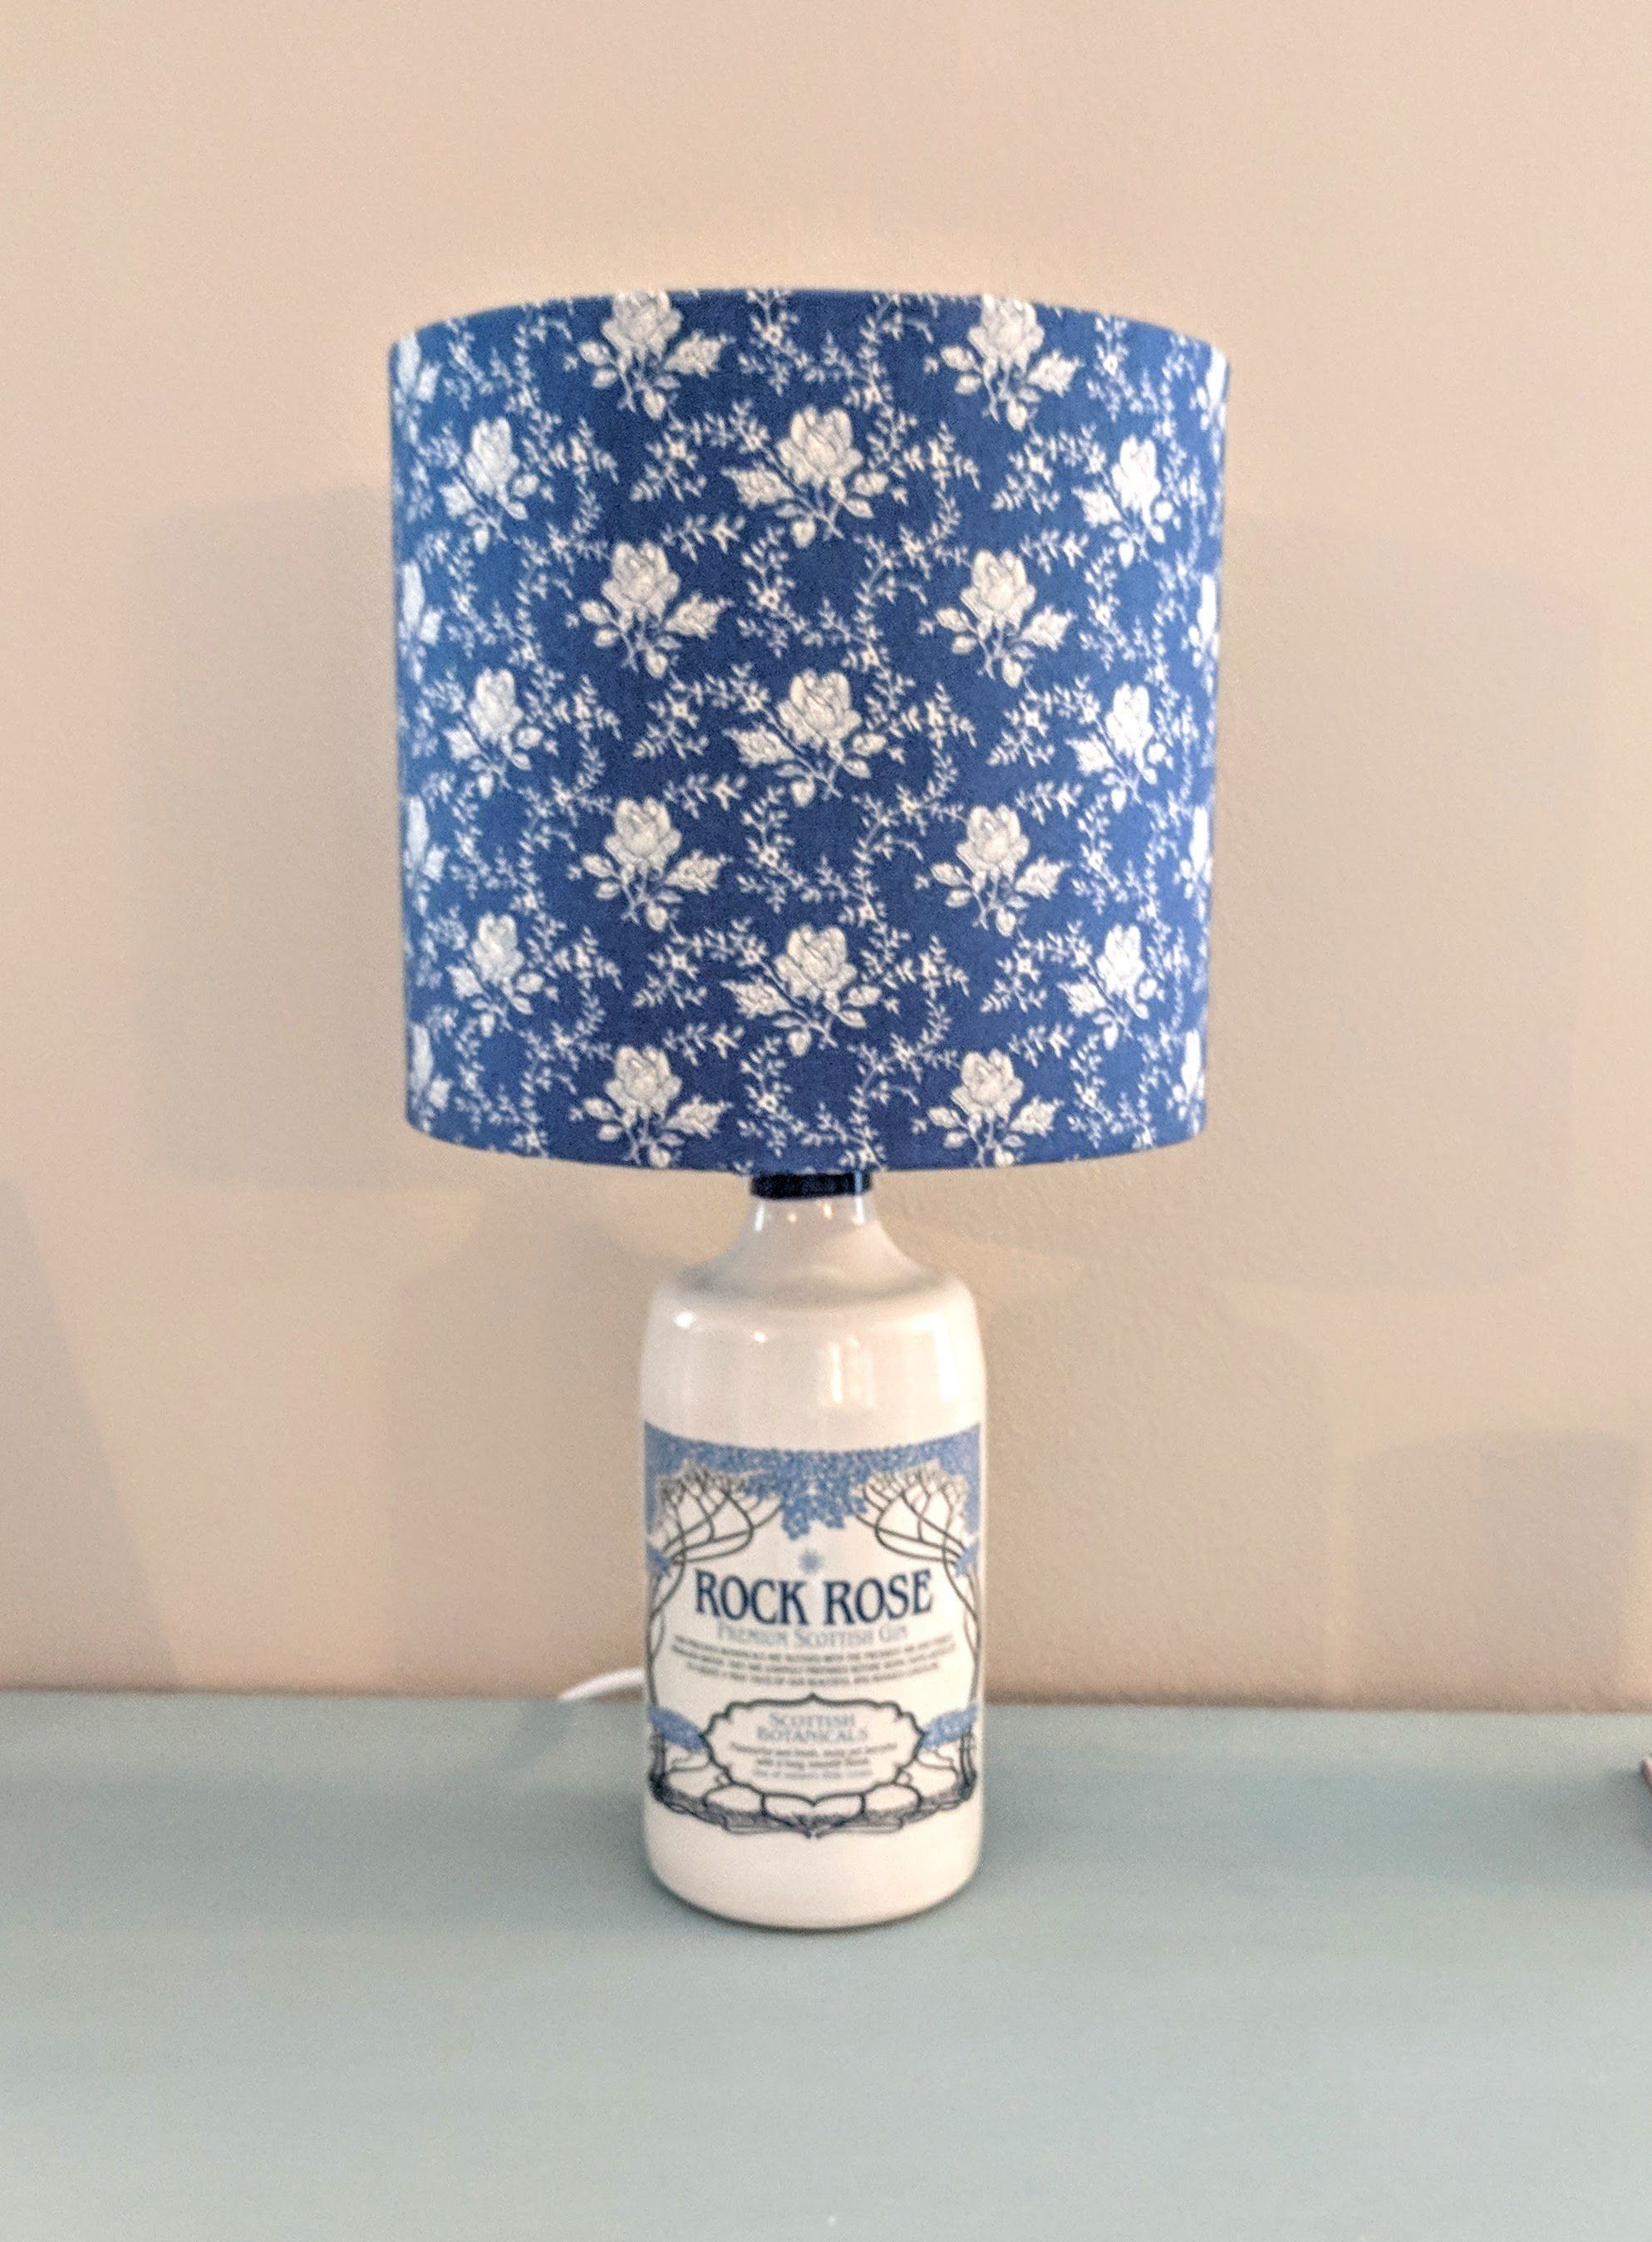 Rock Rose Gin Table Lamp With Optional Blue And White Roses